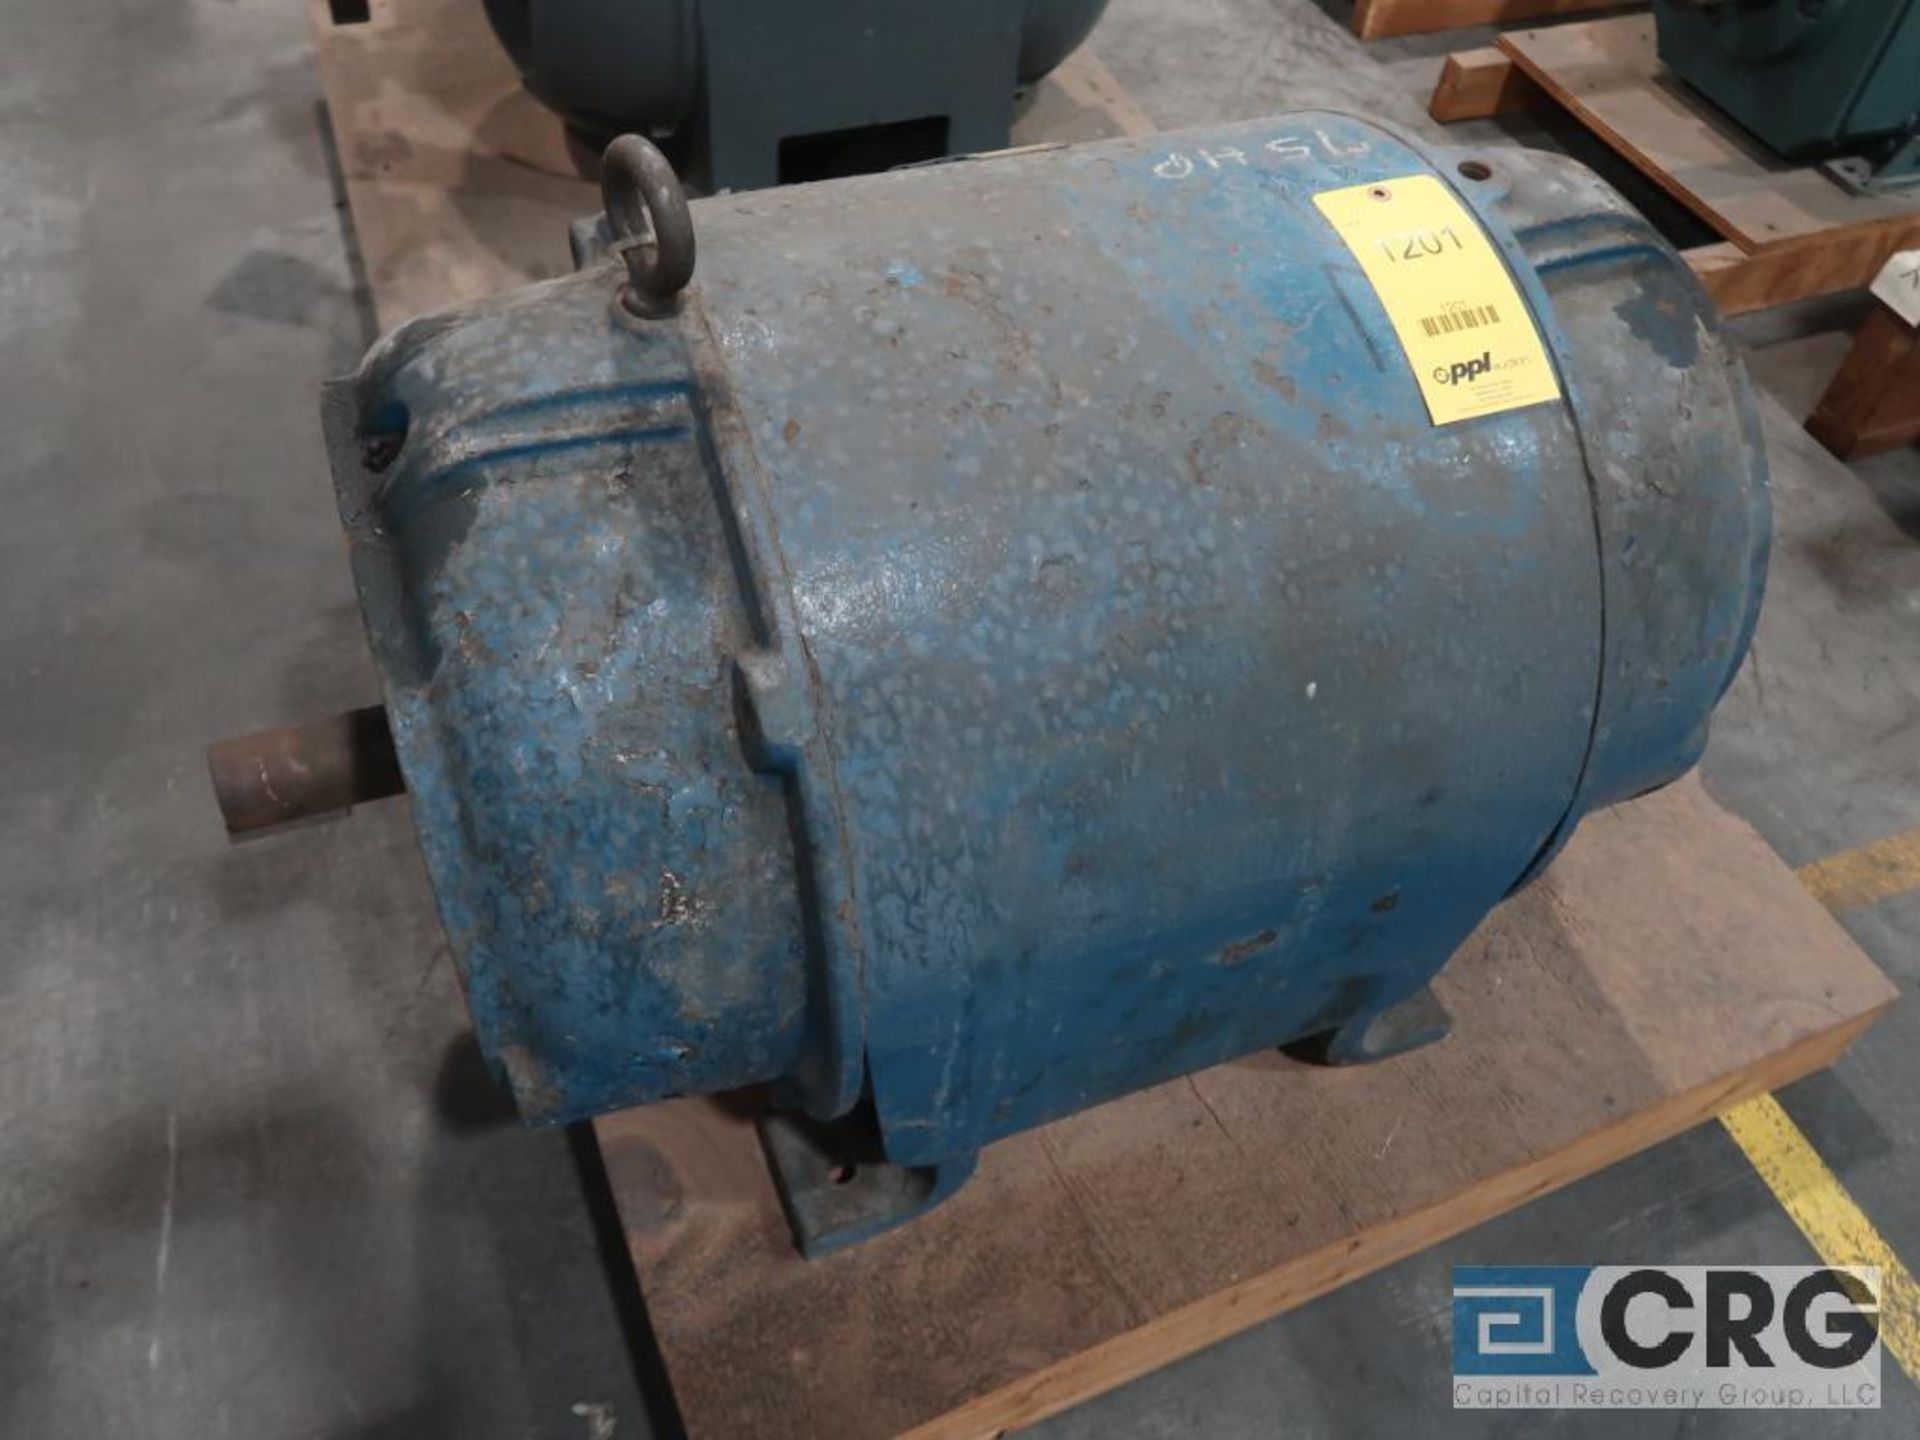 Reliance induction motor, 75 HP, 1,775 RPMs, 440 volt, 3 ph., CB445-S frame (Finish Building)